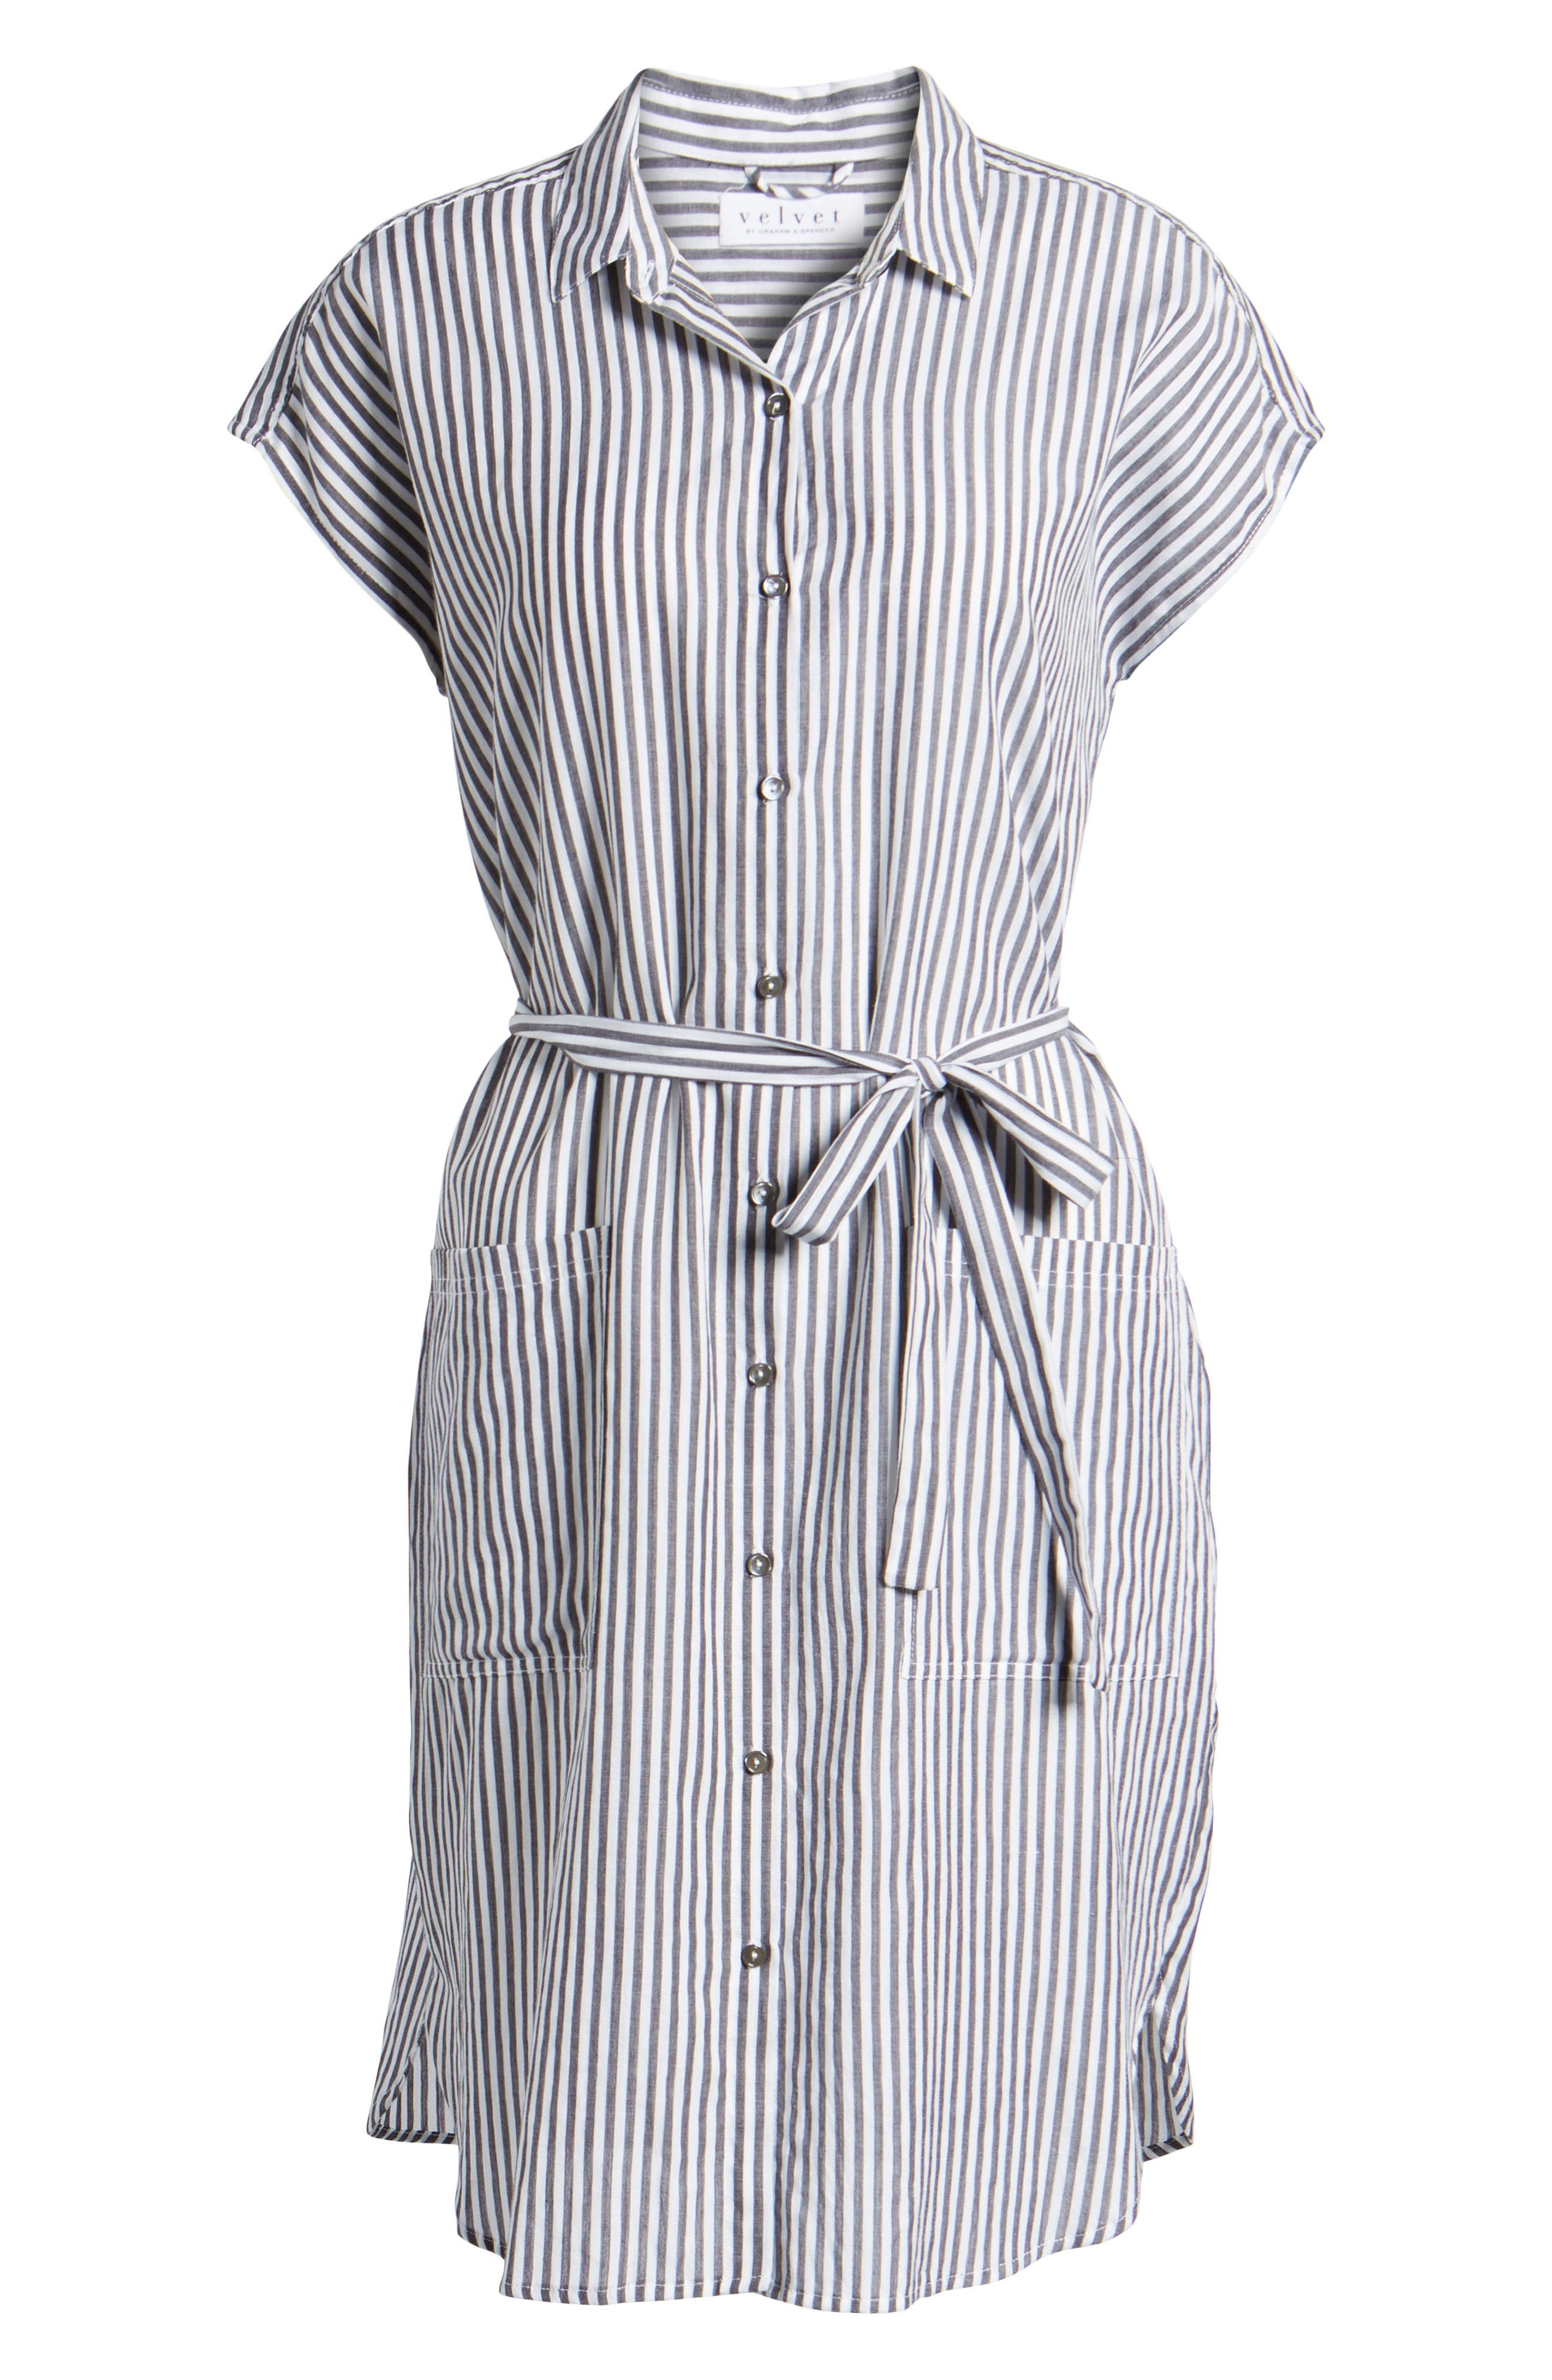 Stripe Belted Cotton Shirtdress,                             Alternate thumbnail 6, color,                             Charcoal Grey